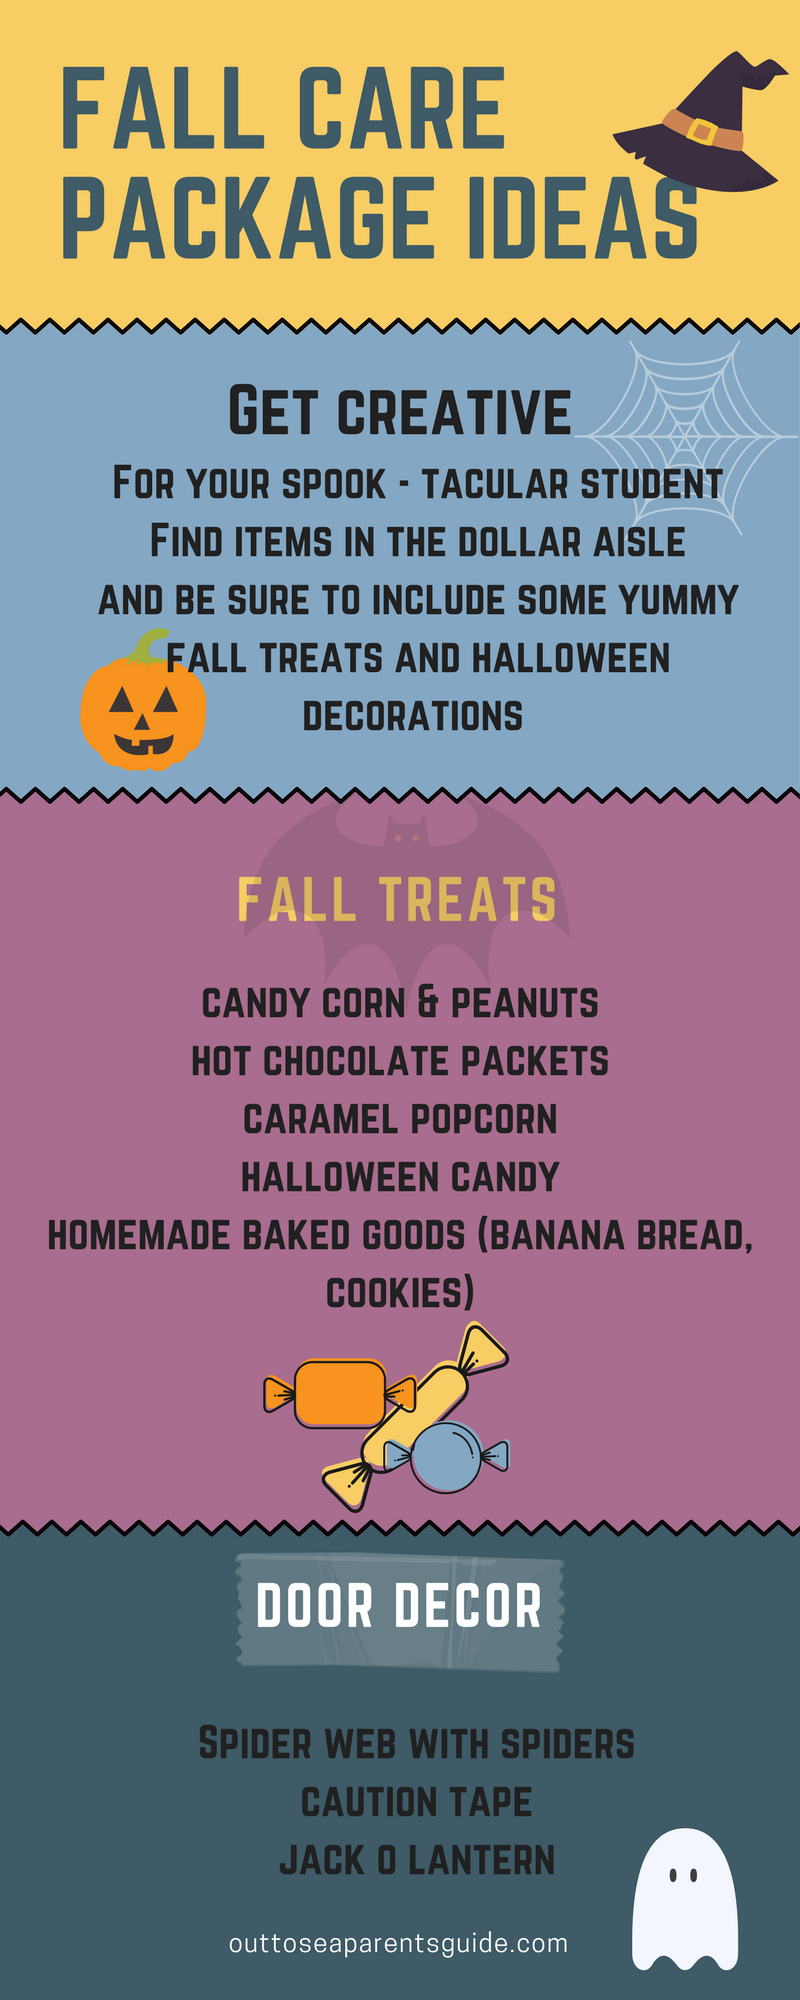 Fall Care Package infographic.png